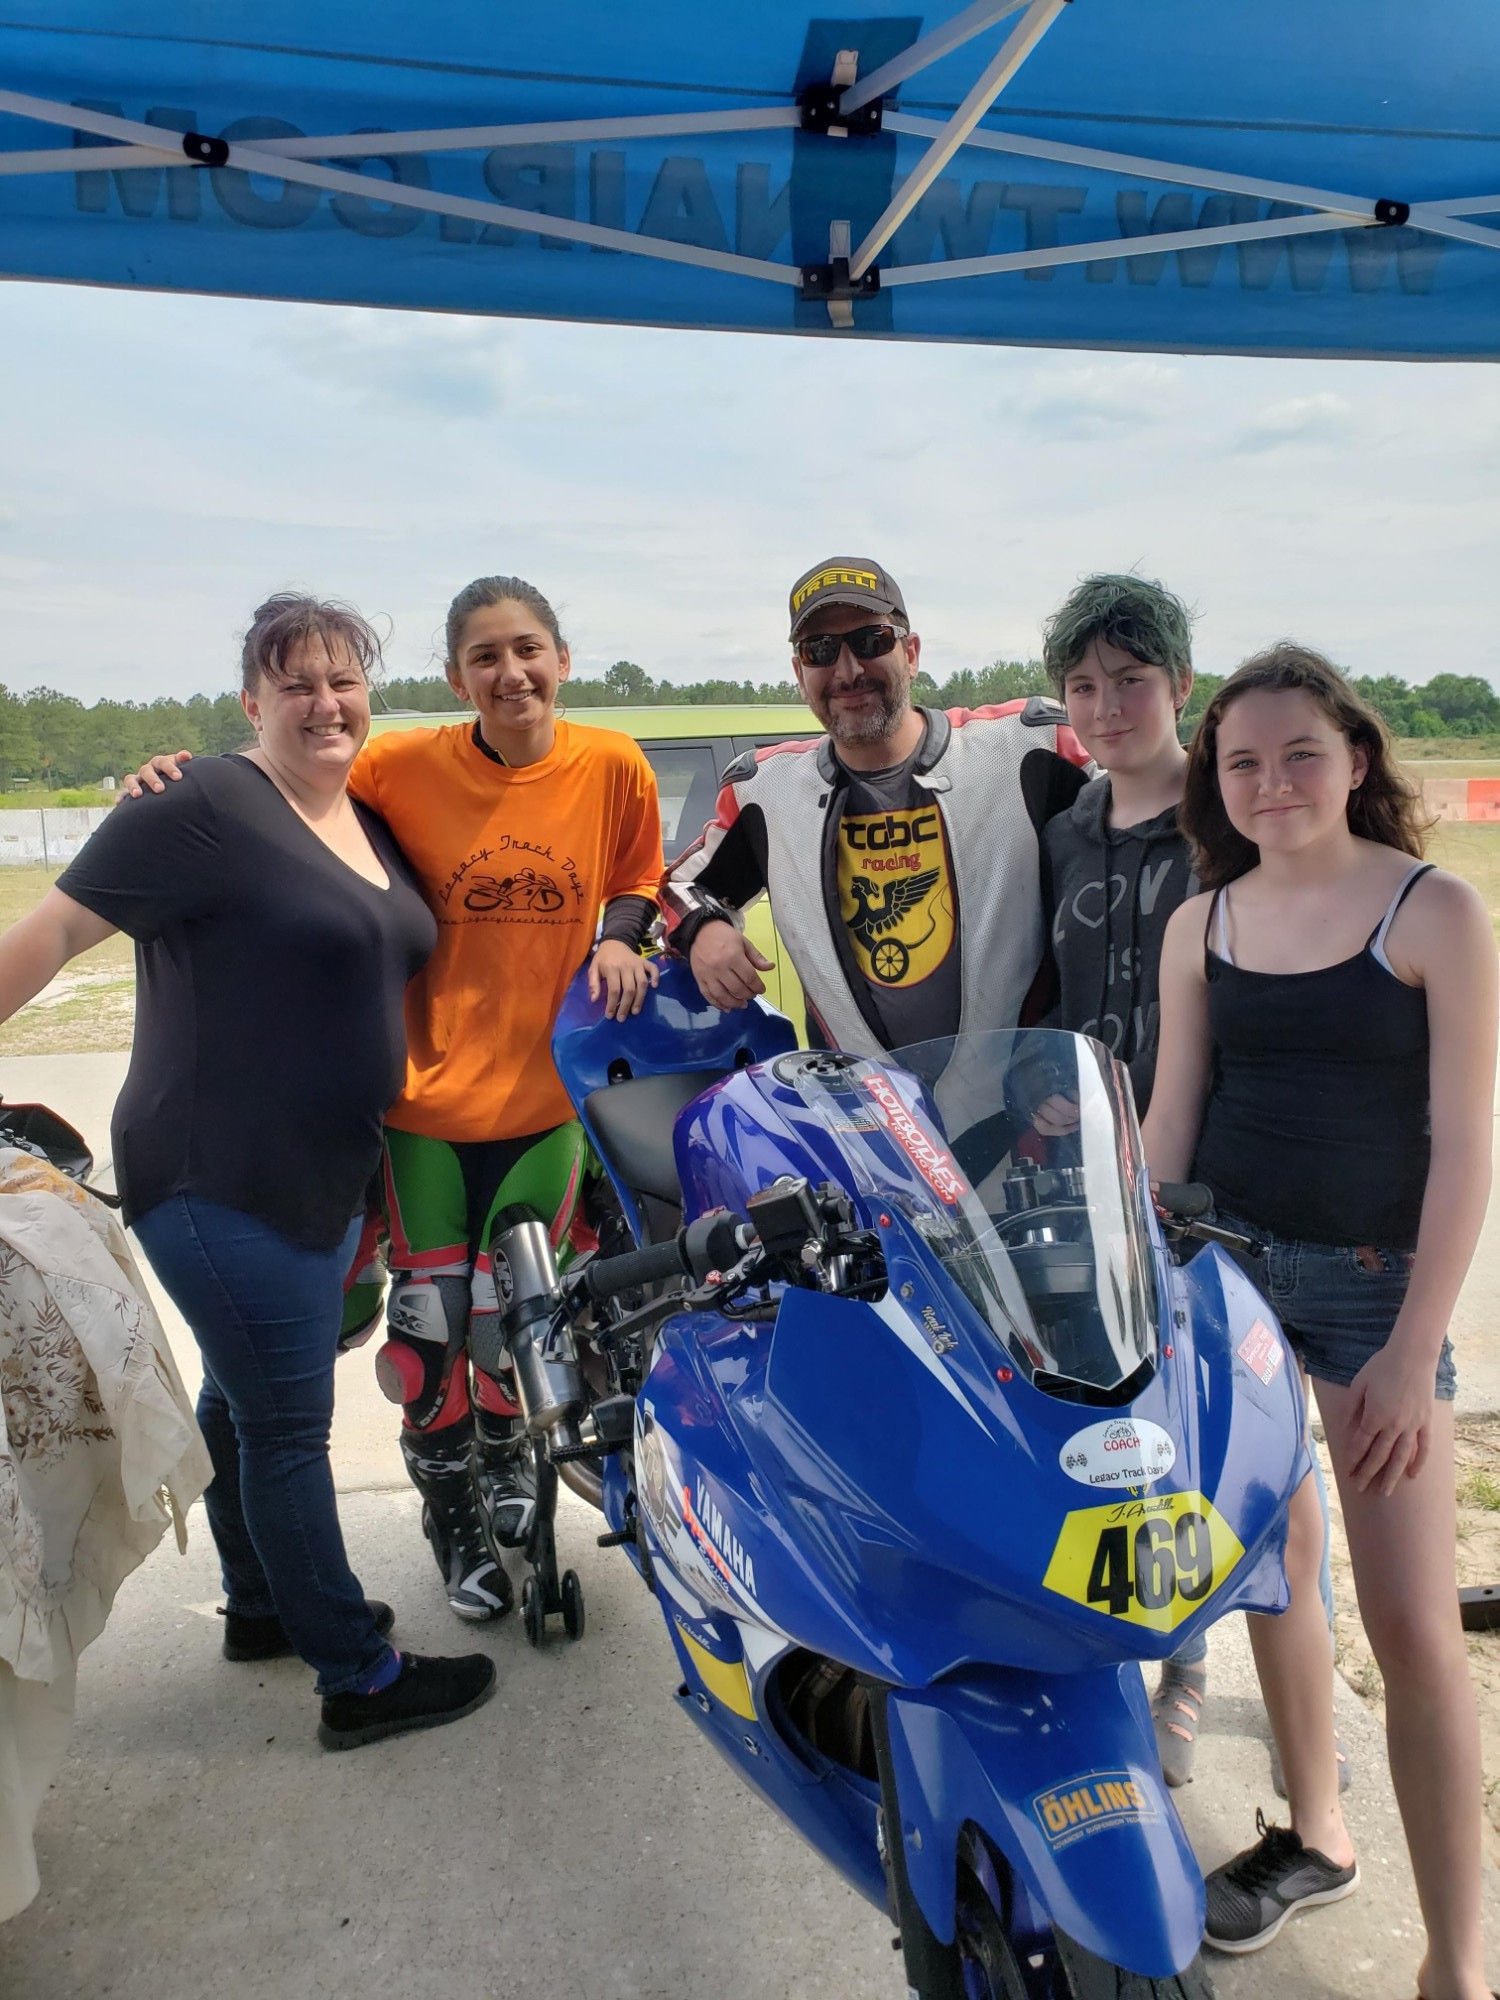 Legacy Track Dayz owners CJ Cohen (center) and Jenni Cohen (far left) with their daughters (far right) and racer Jamie Astudillo (second from left). Photo courtesy Legacy Track Dayz.